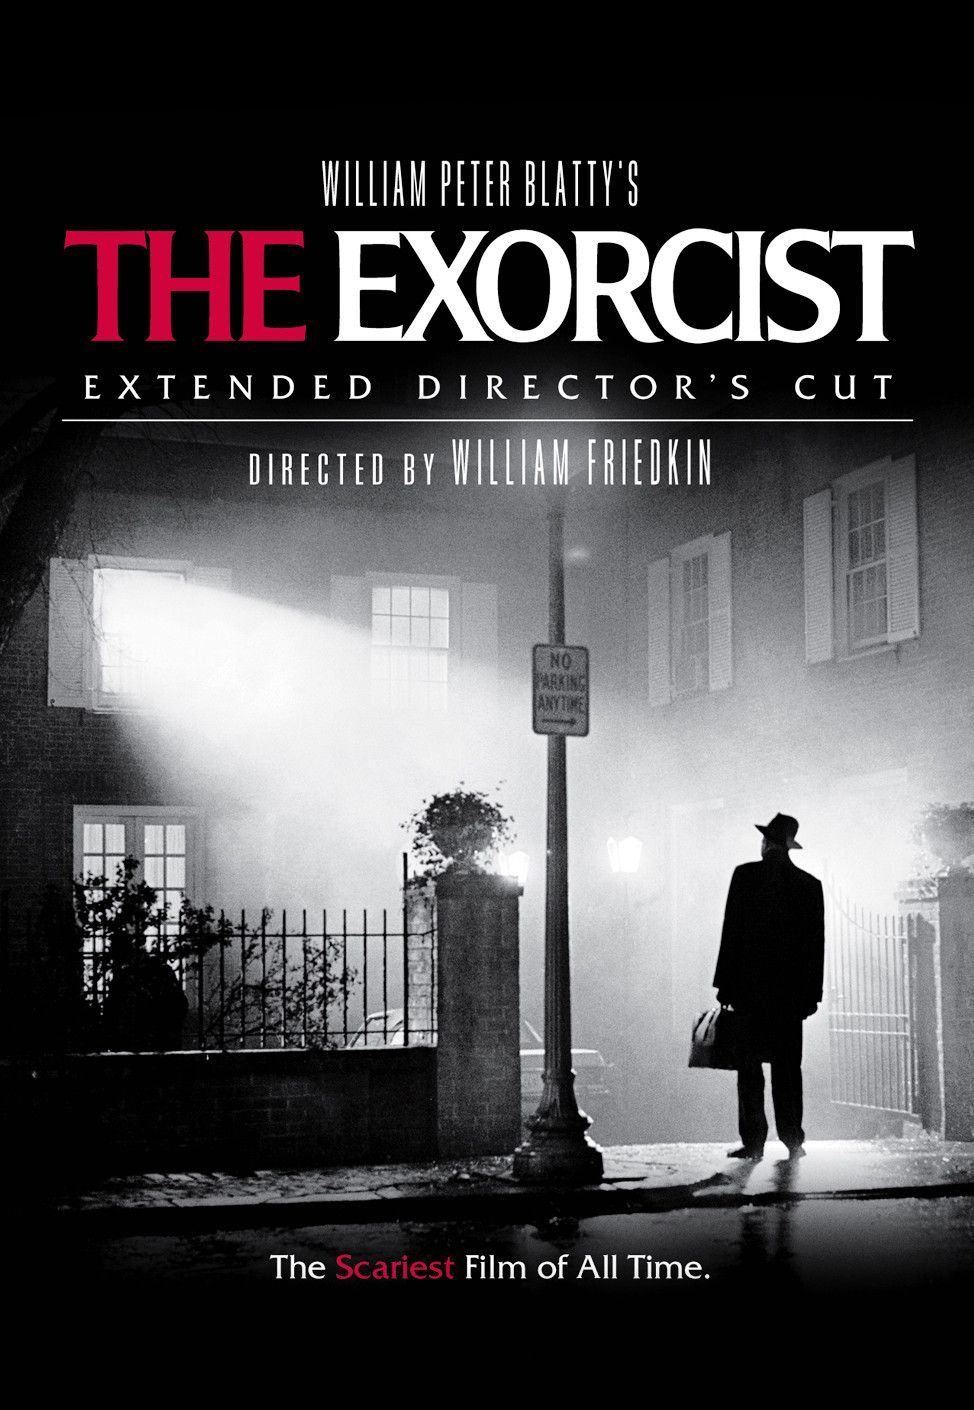 critique of the exorcist The exorcist has received generally positive reviews from critics review aggregator rotten tomatoes gives the series a score of 89% based on 51 reviews with an .